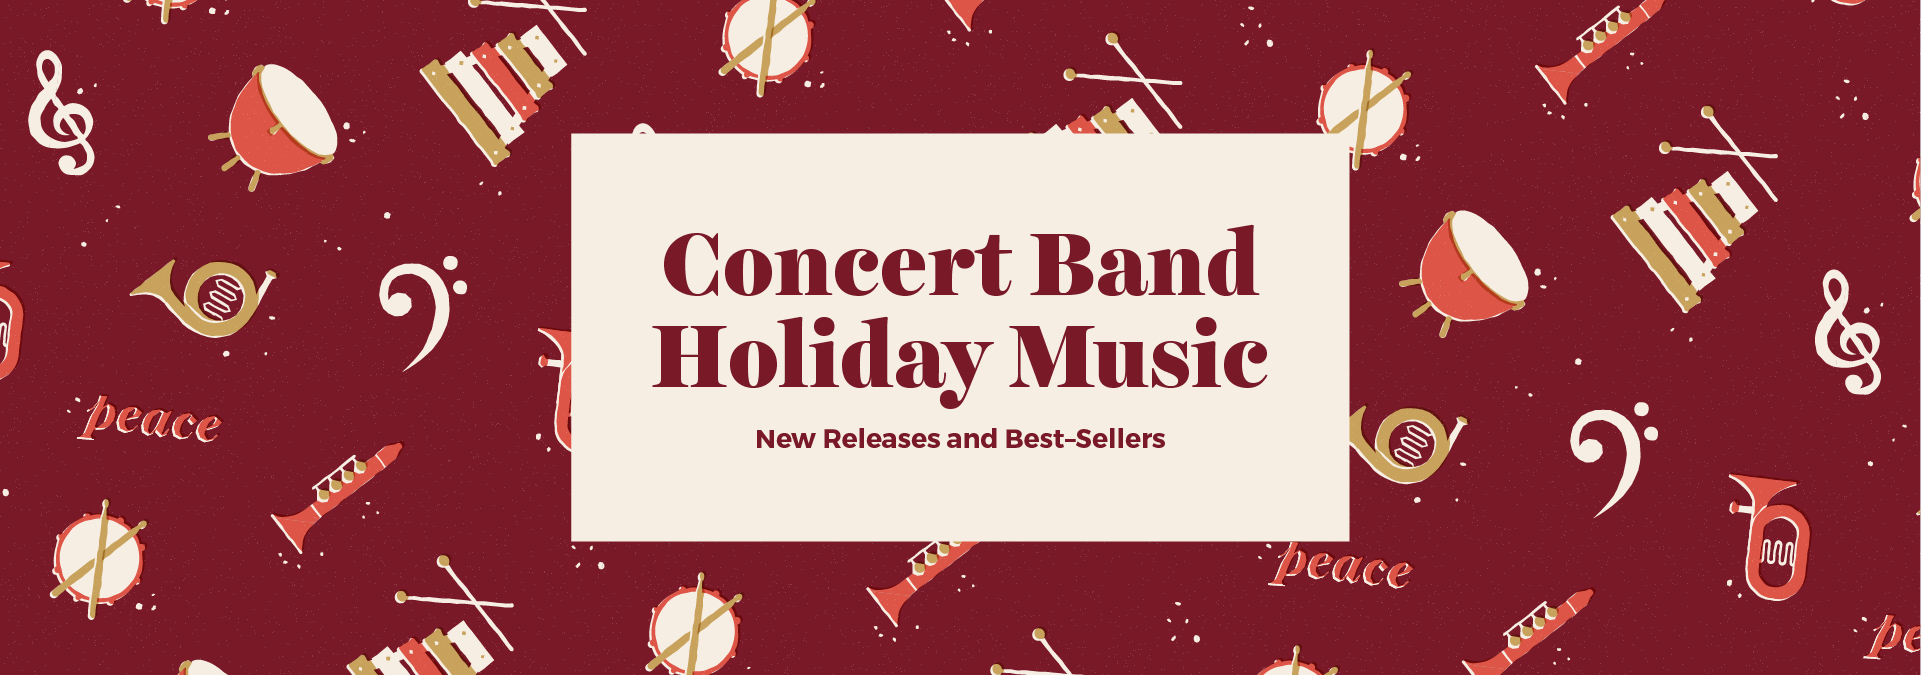 Concert Band Holiday Performance Music